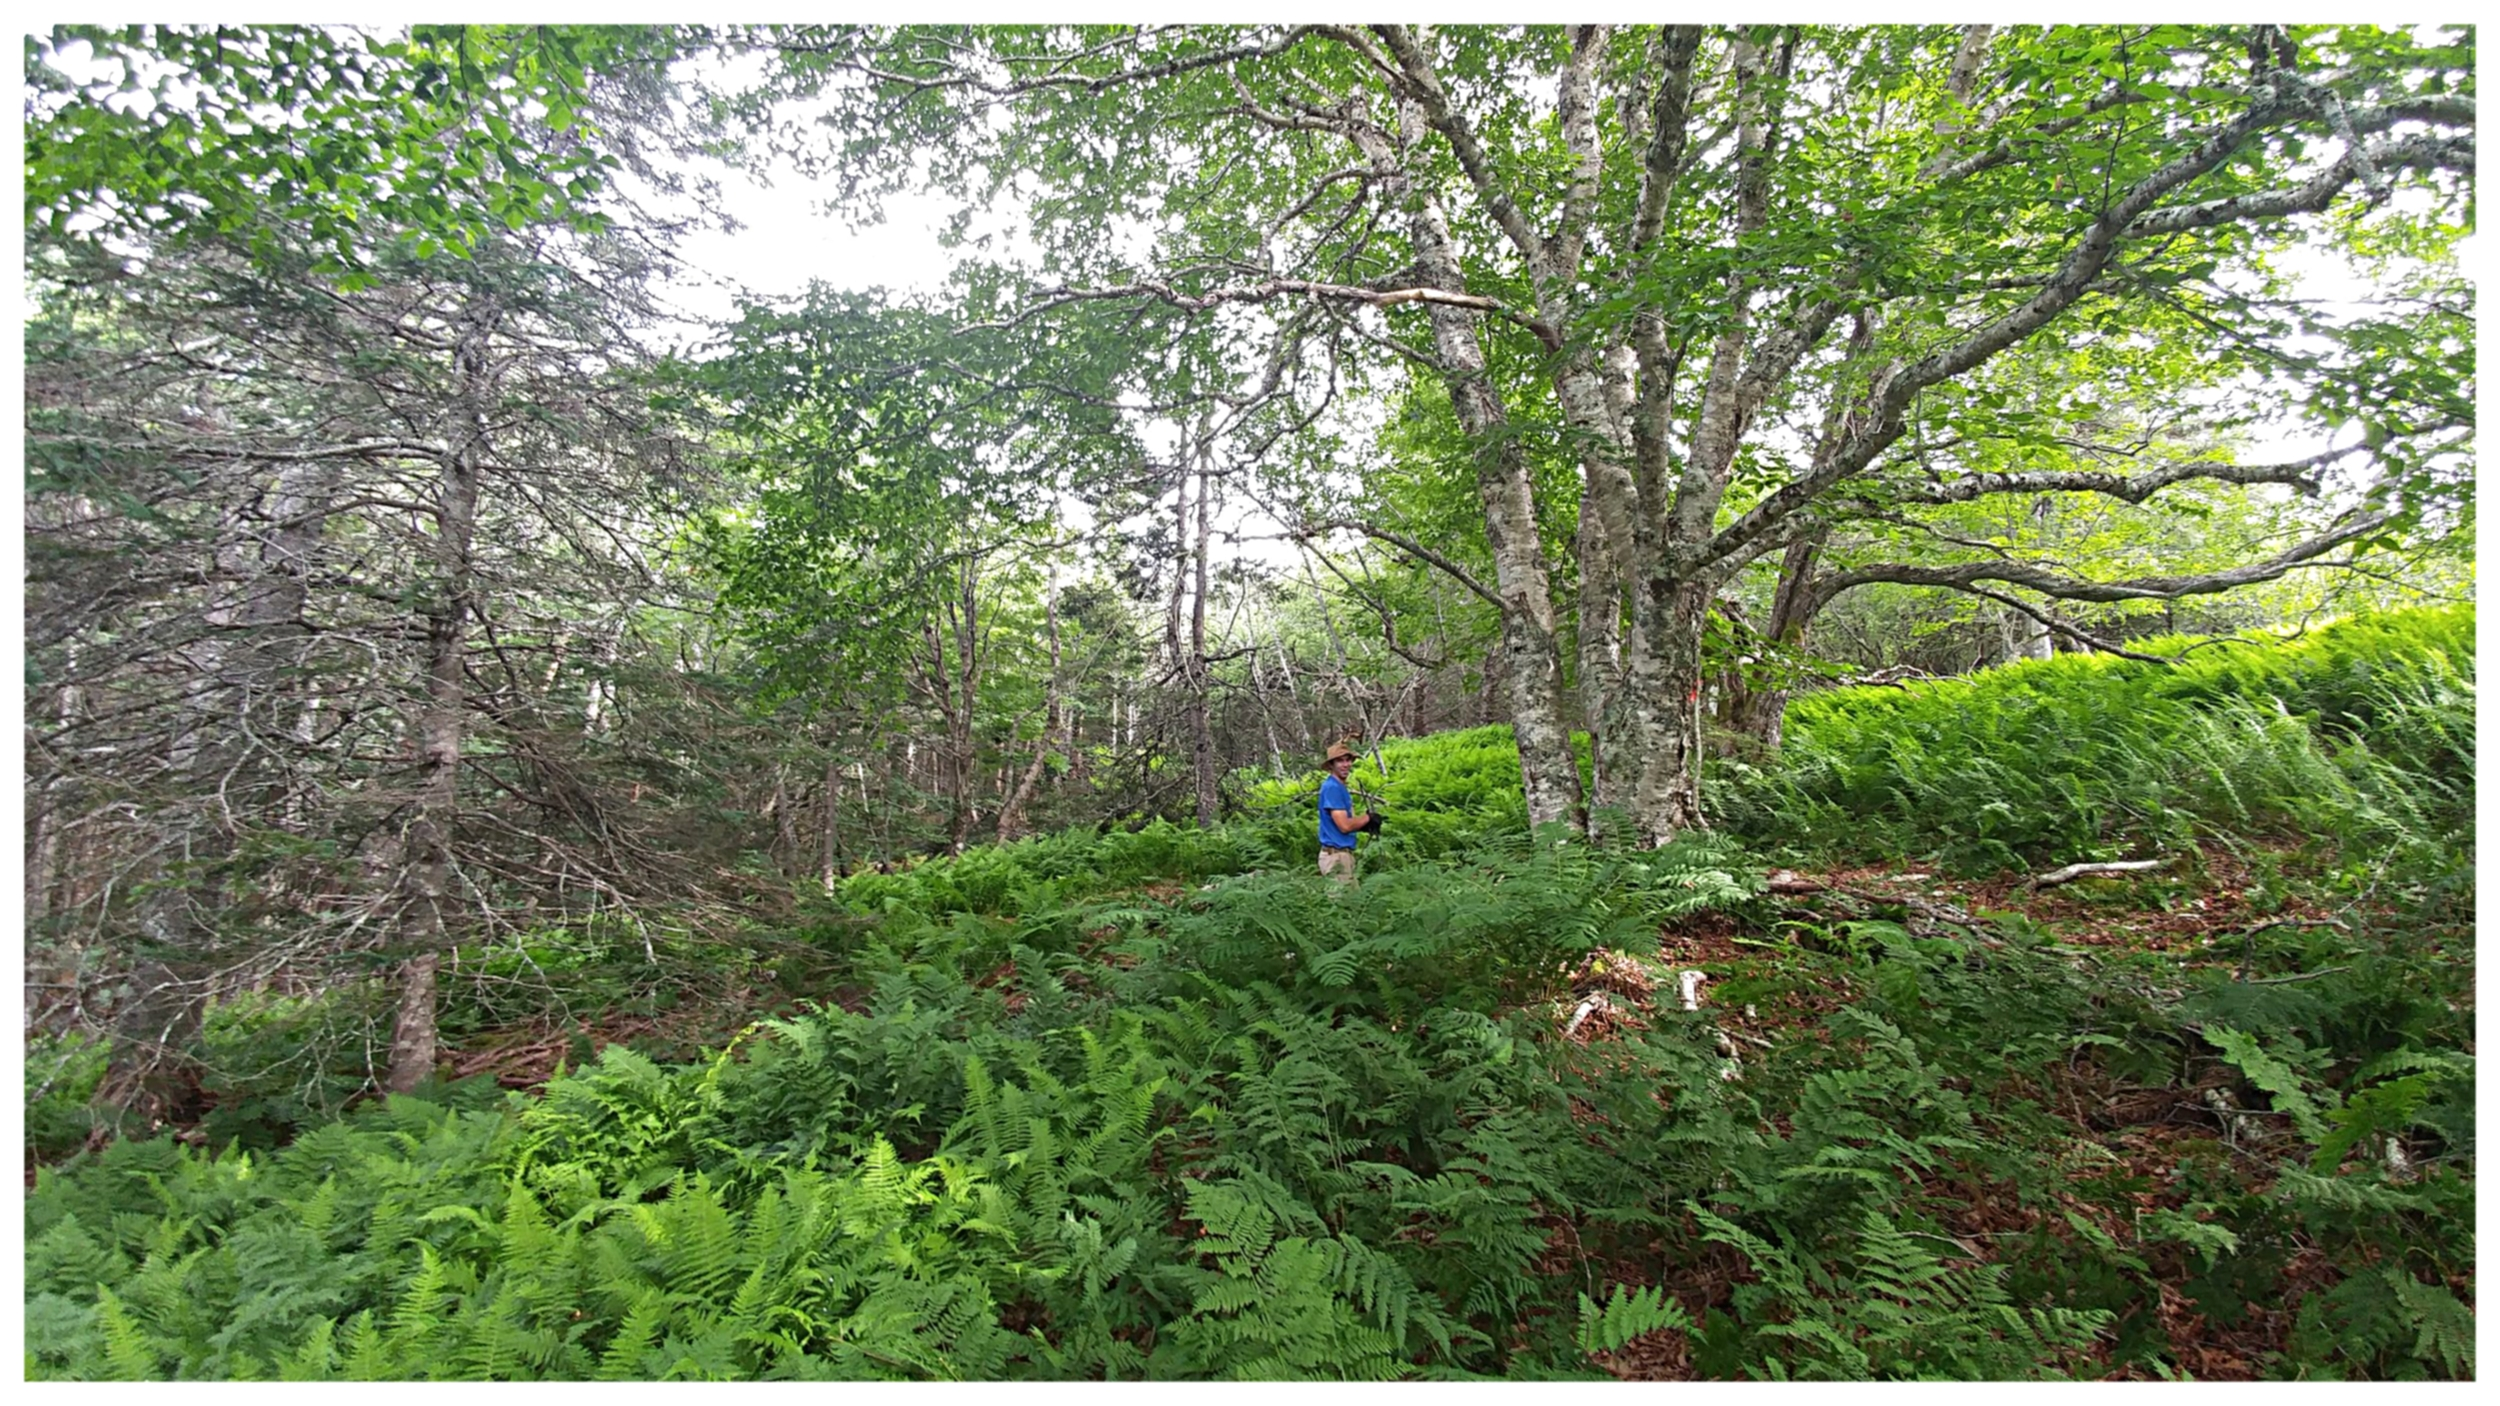 Caring for a natural forest trail.